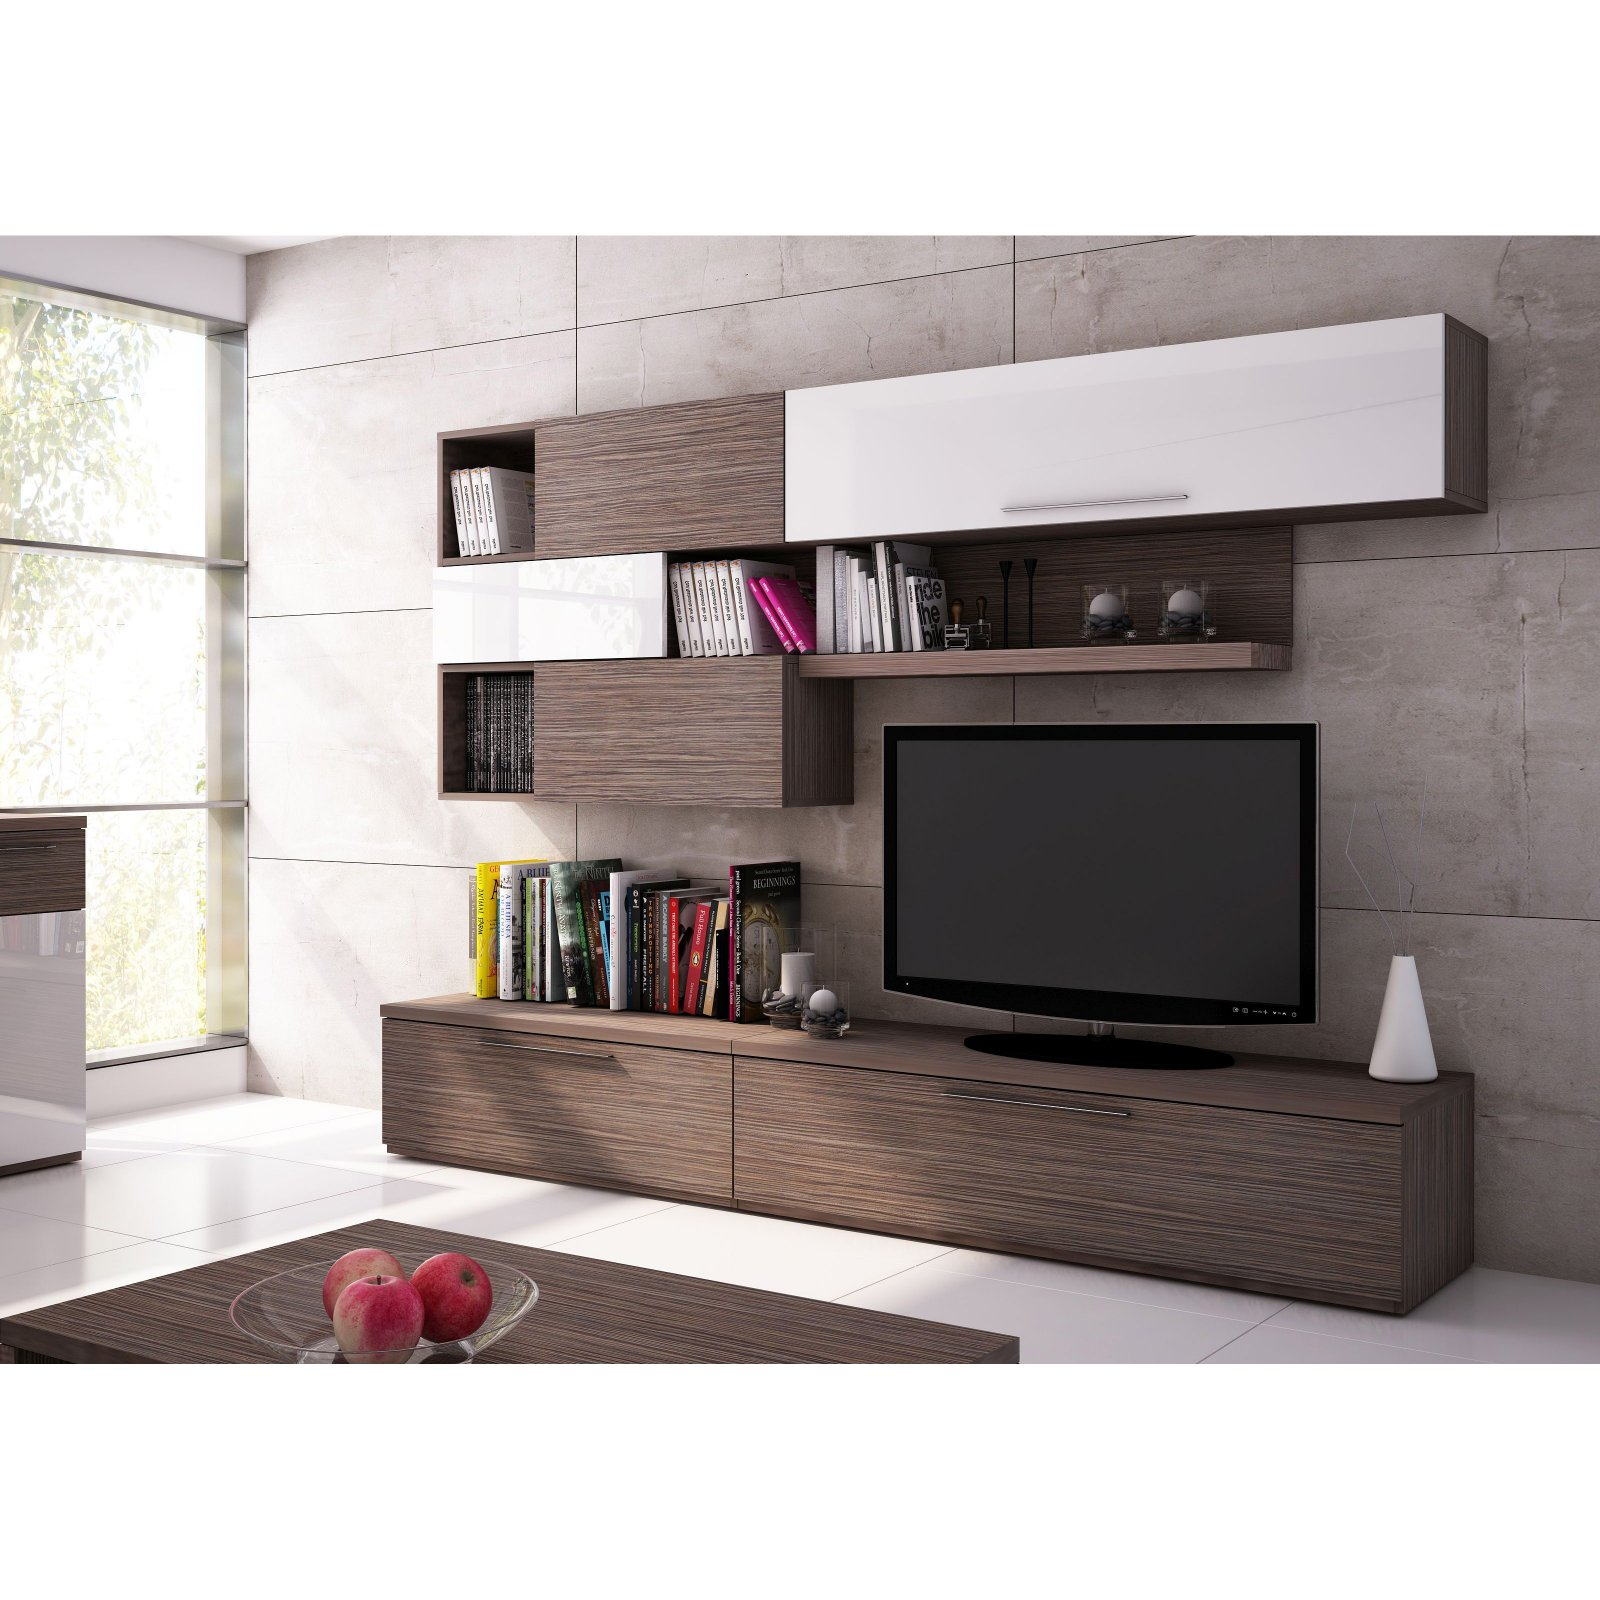 Trasman Isola 2 Wall Unit Entertainment Center In 2020 Wall Unit